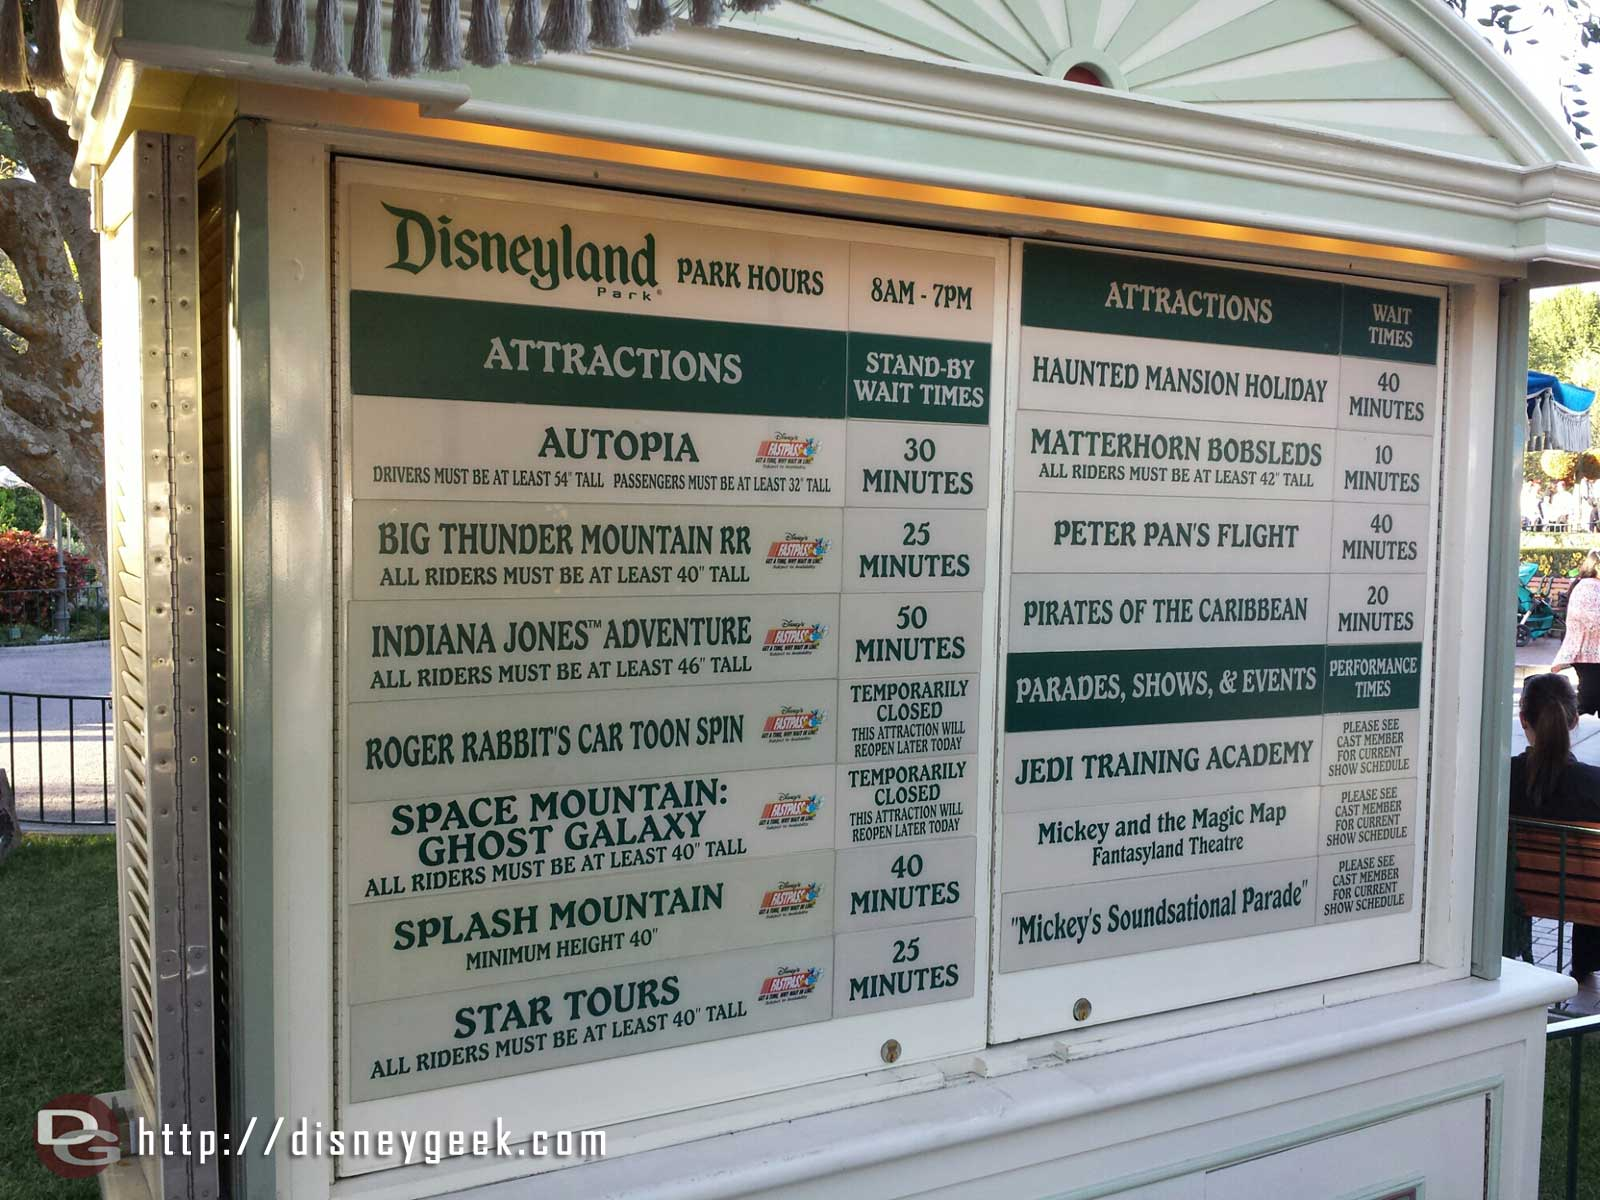 #Disneyland waits as of 5:26pm